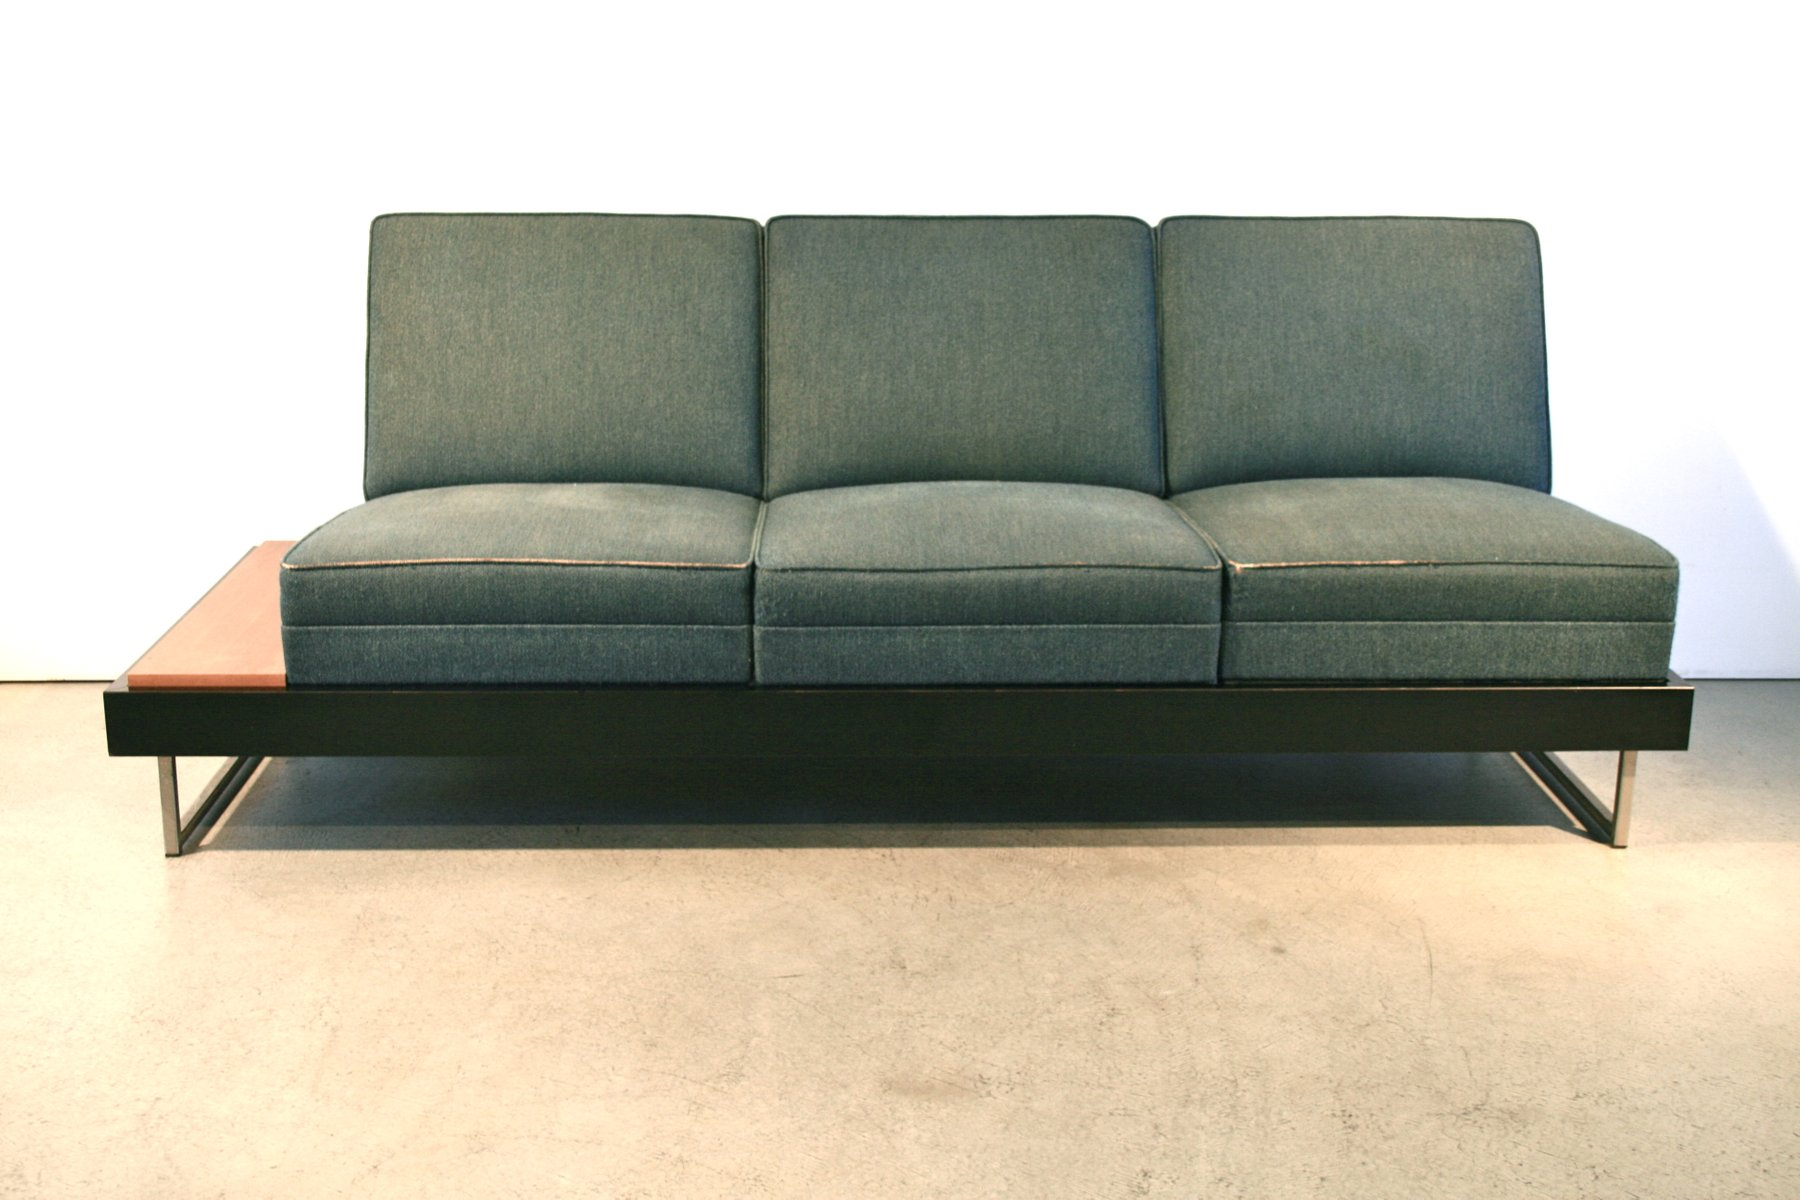 Sofa by George Nelson, 1950s 3. previous